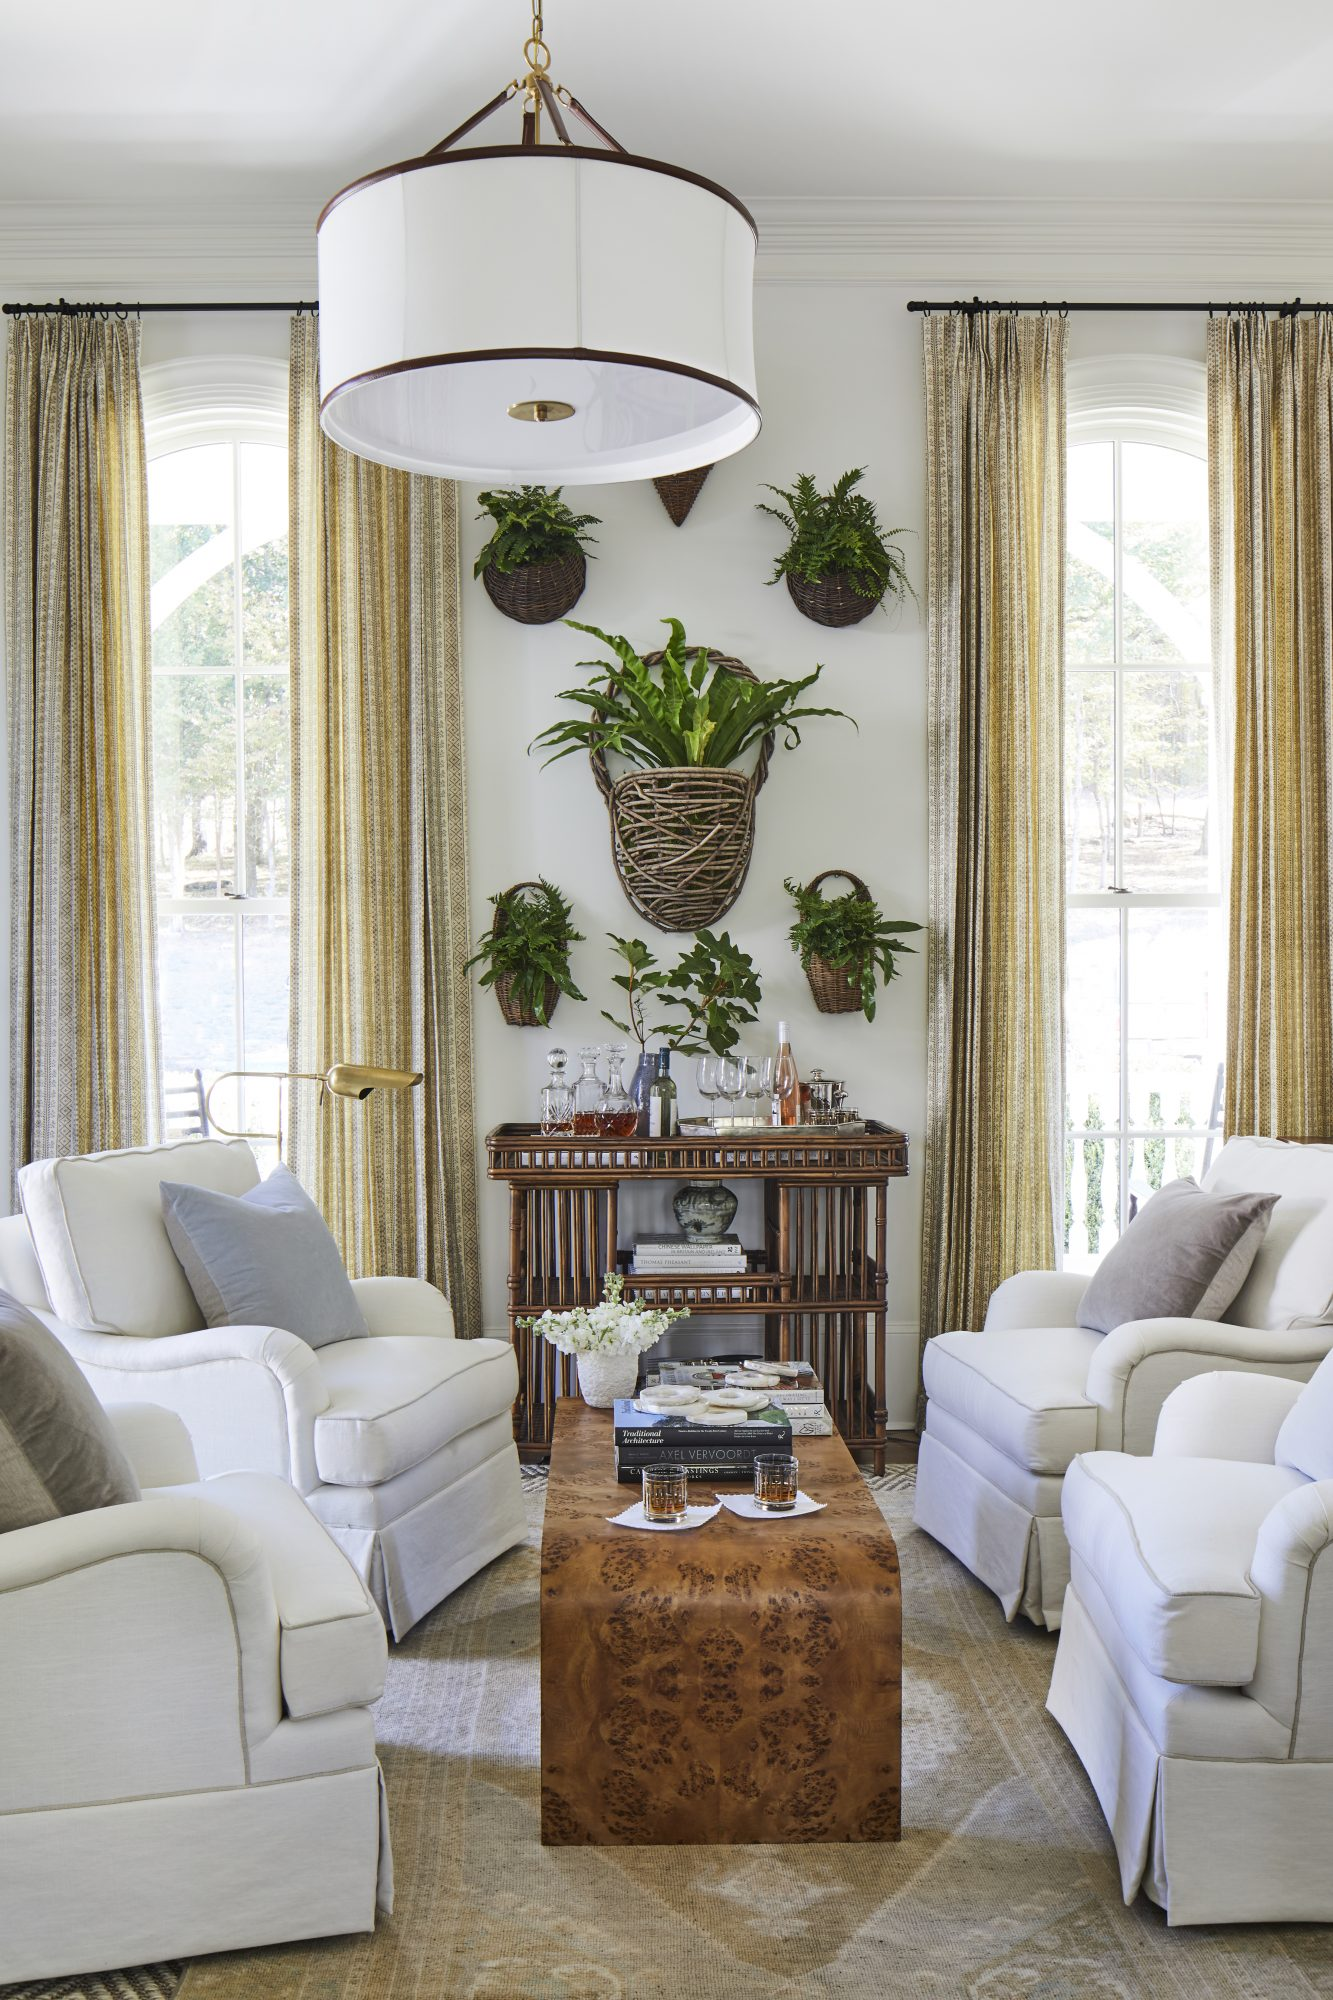 White Room with Hanging Baskets of Indoor Plants